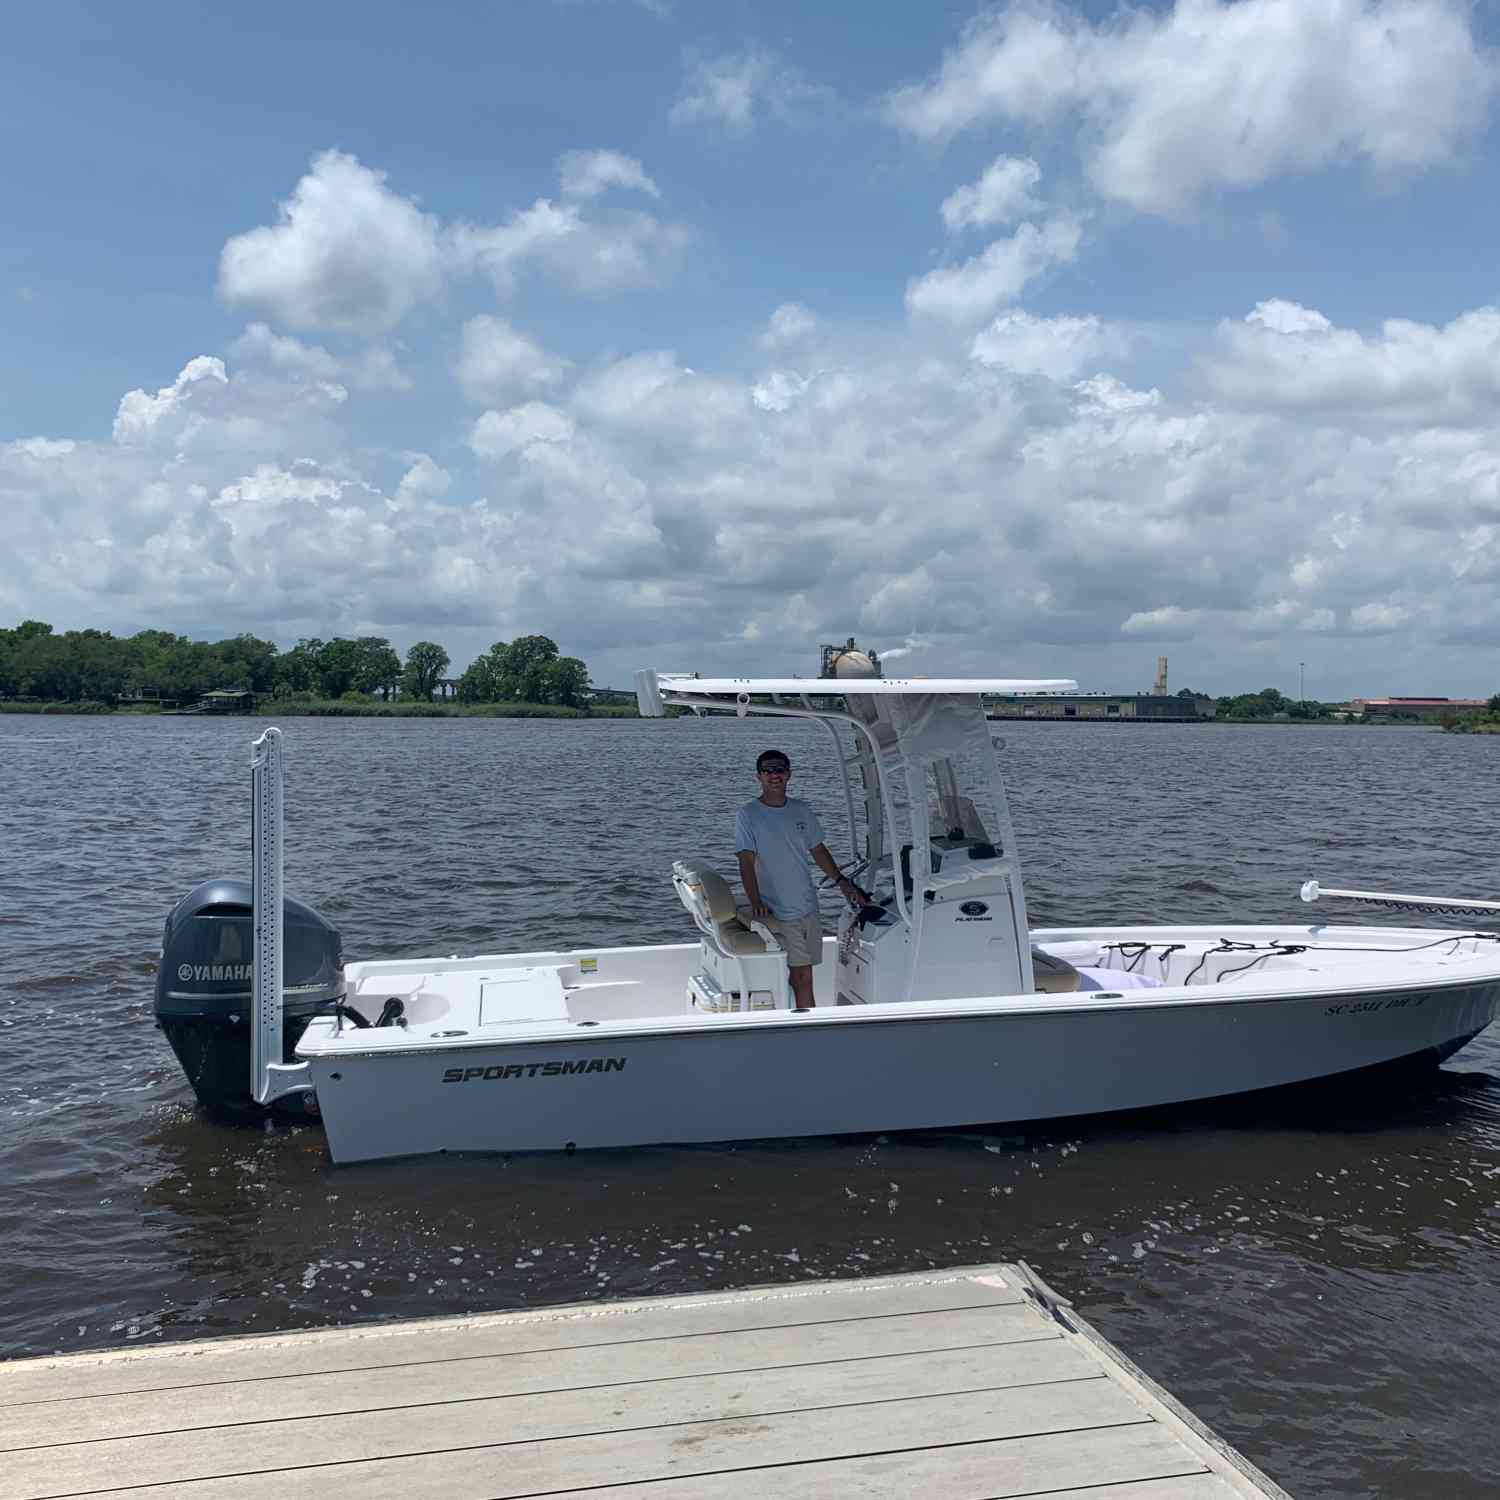 Title: Delivery Day - On board their Sportsman Masters 247 Bay Boat - Location: Georgetown, SC. Participating in the Photo Contest #SportsmanJune2020